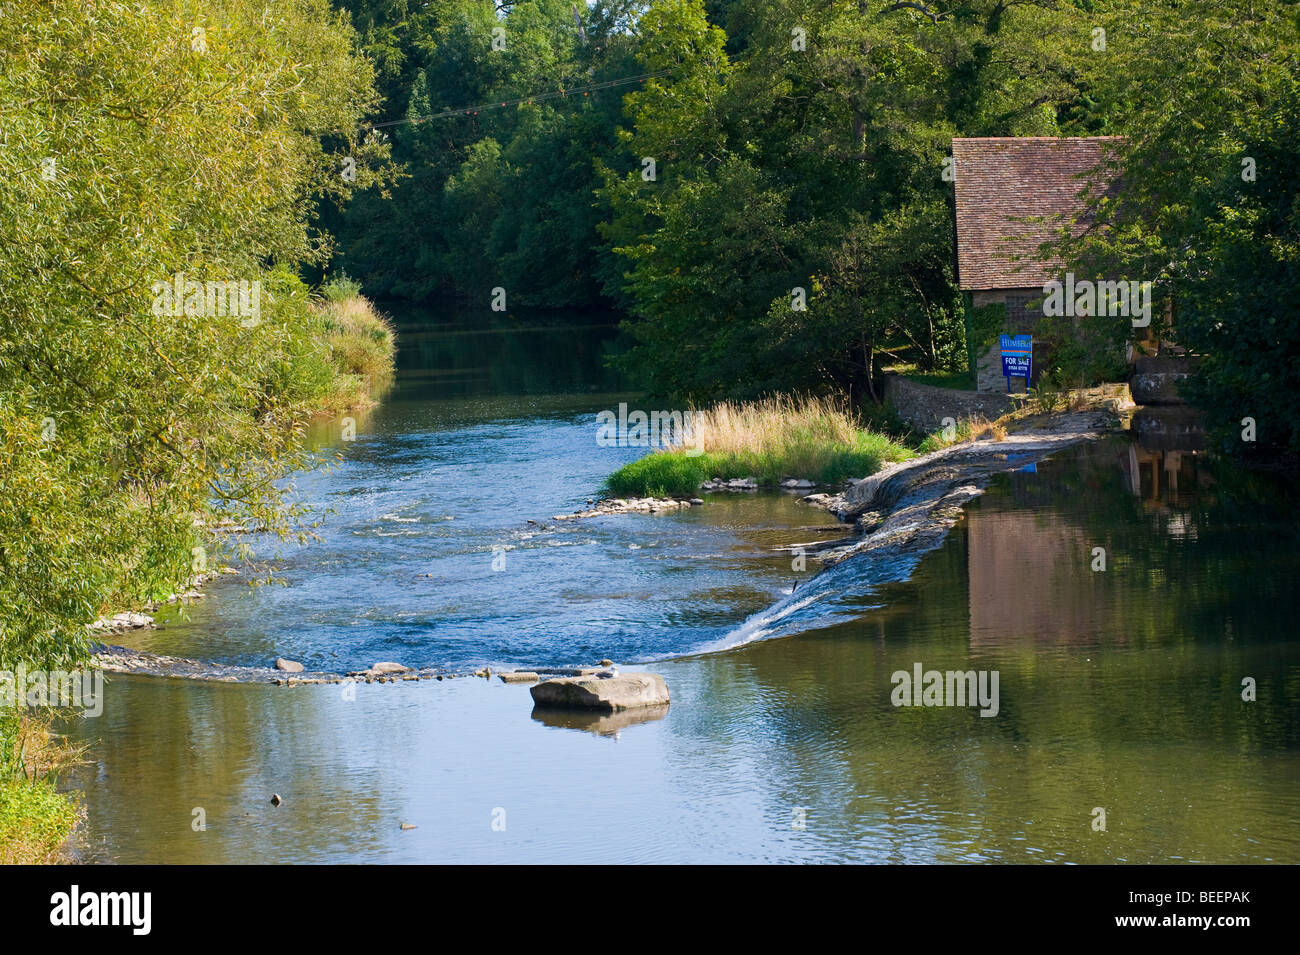 View down River Teme with old mill house for sale Ludlow Shropshire England UK - Stock Image